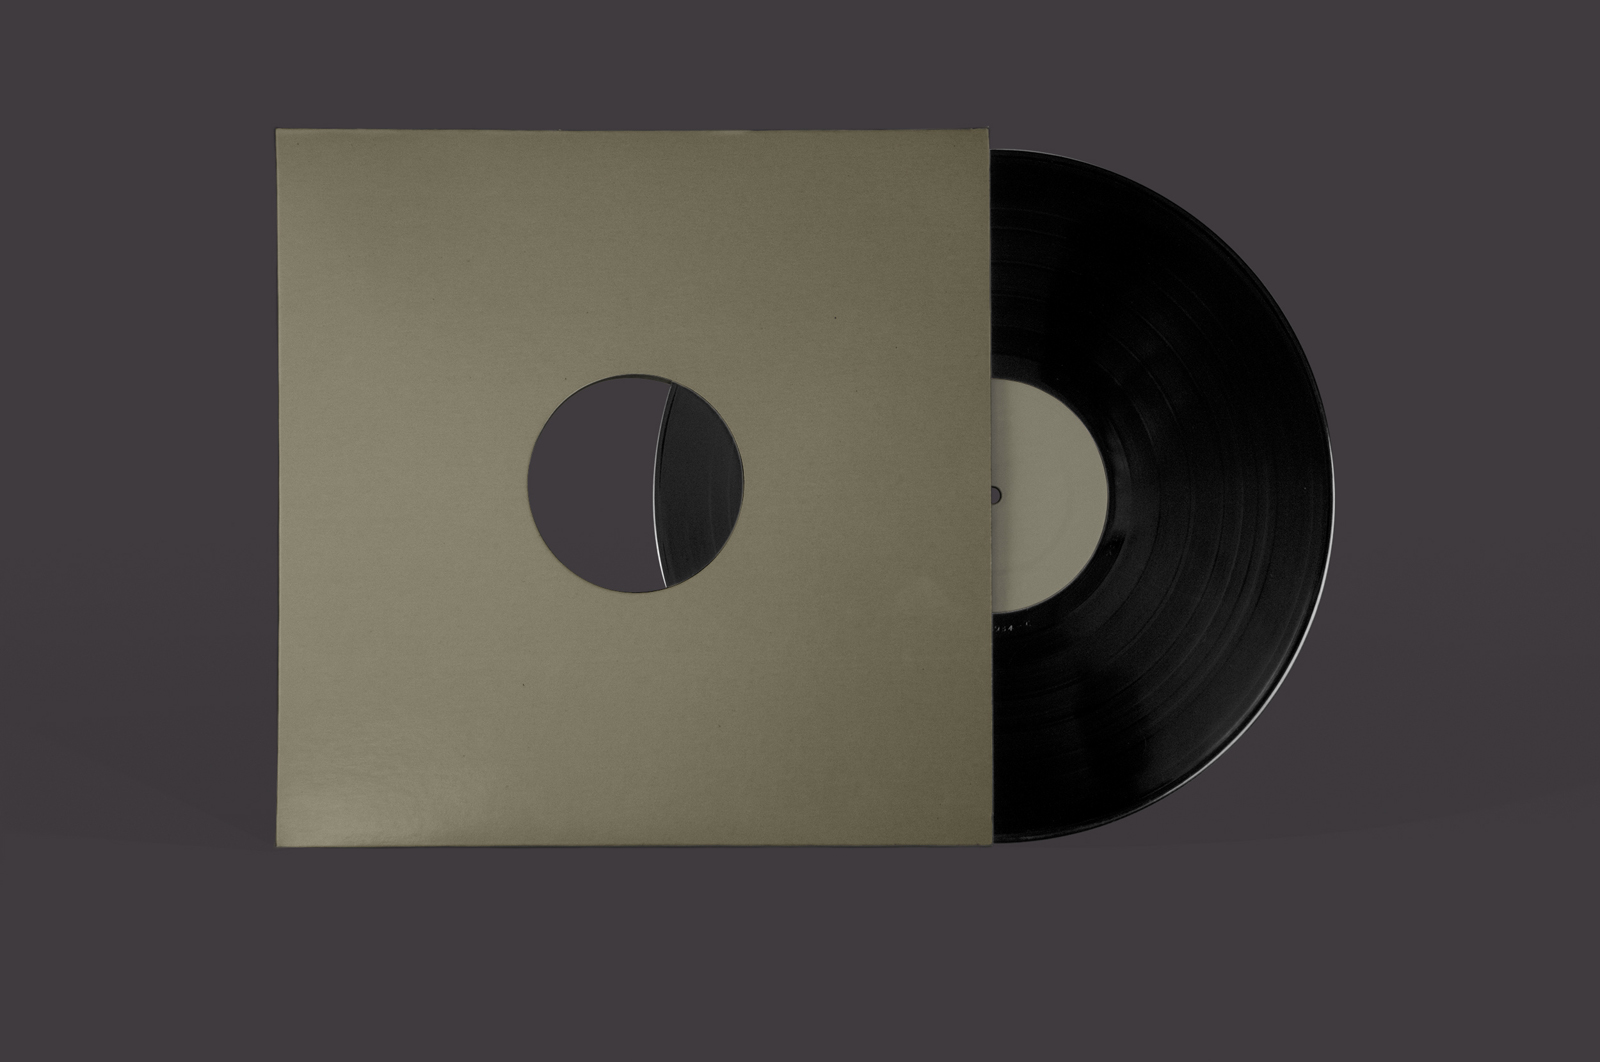 the vinyl record mockup templates get an upgrade